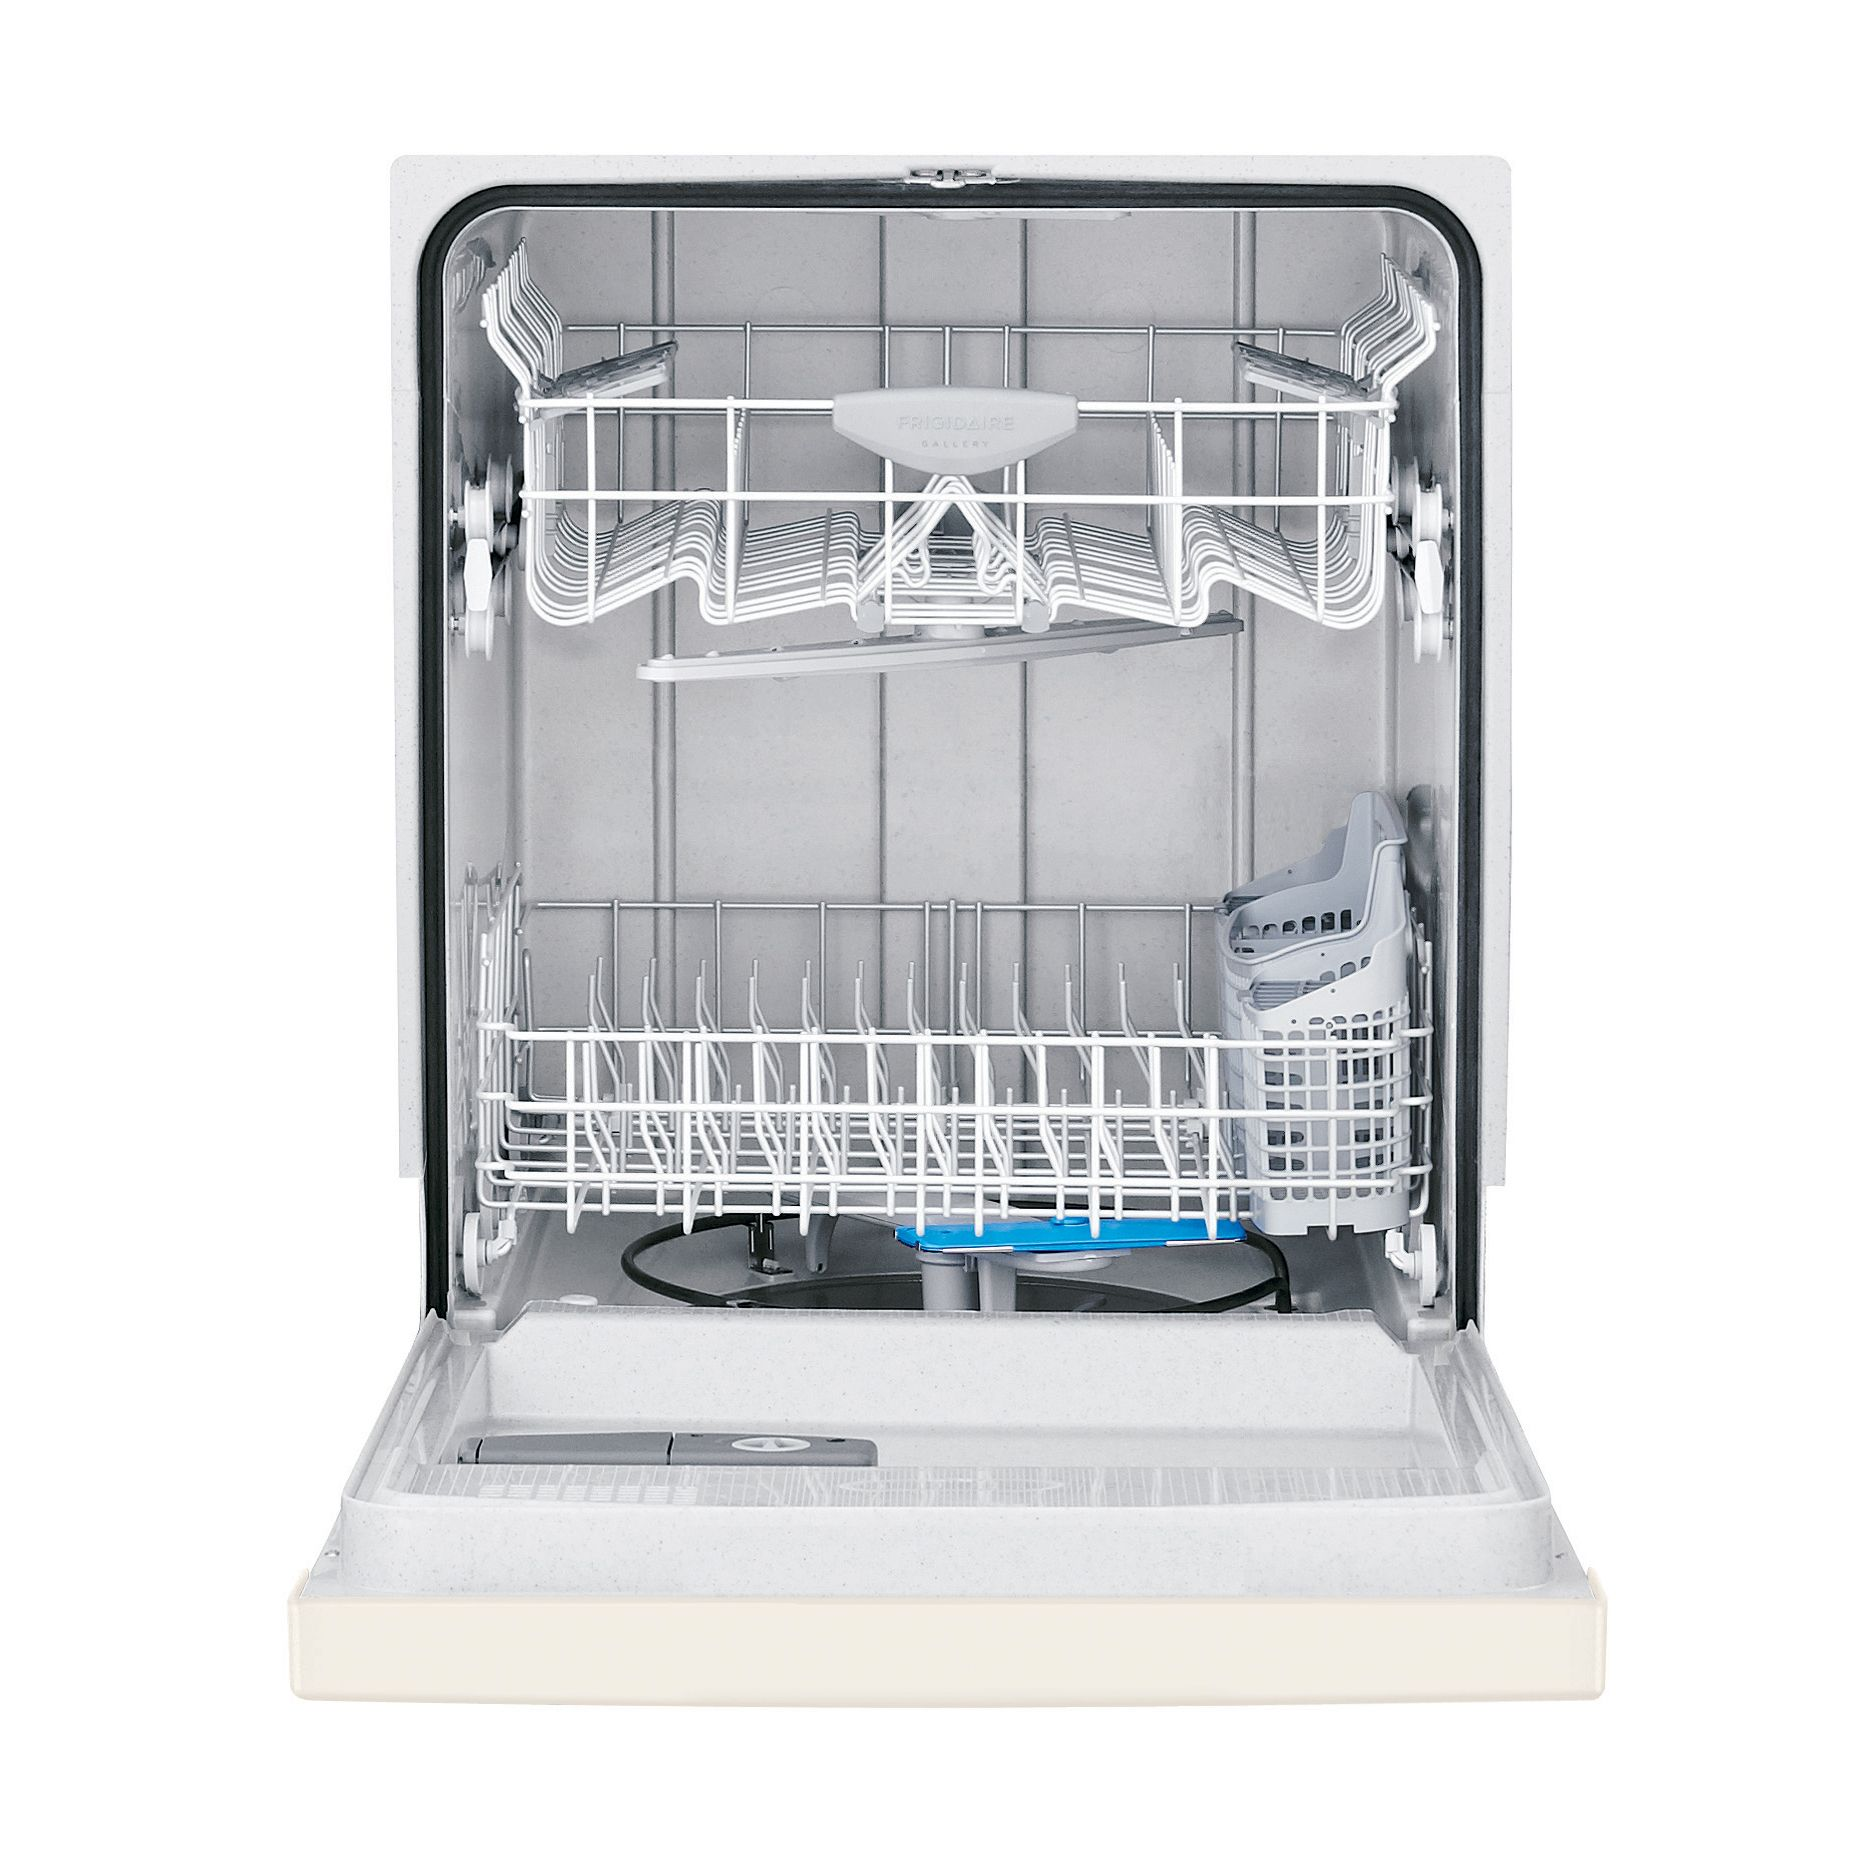 Frigidaire 24'' Built-In Dishwasher - Bisque